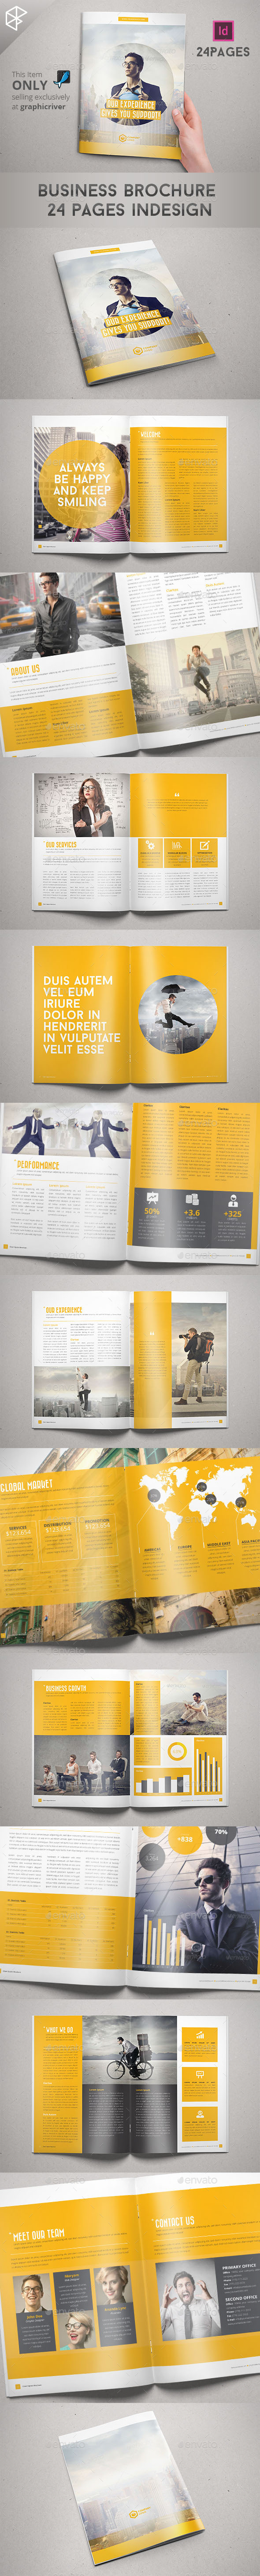 Business Brochure 24 Pages Indesign - Informational Brochures